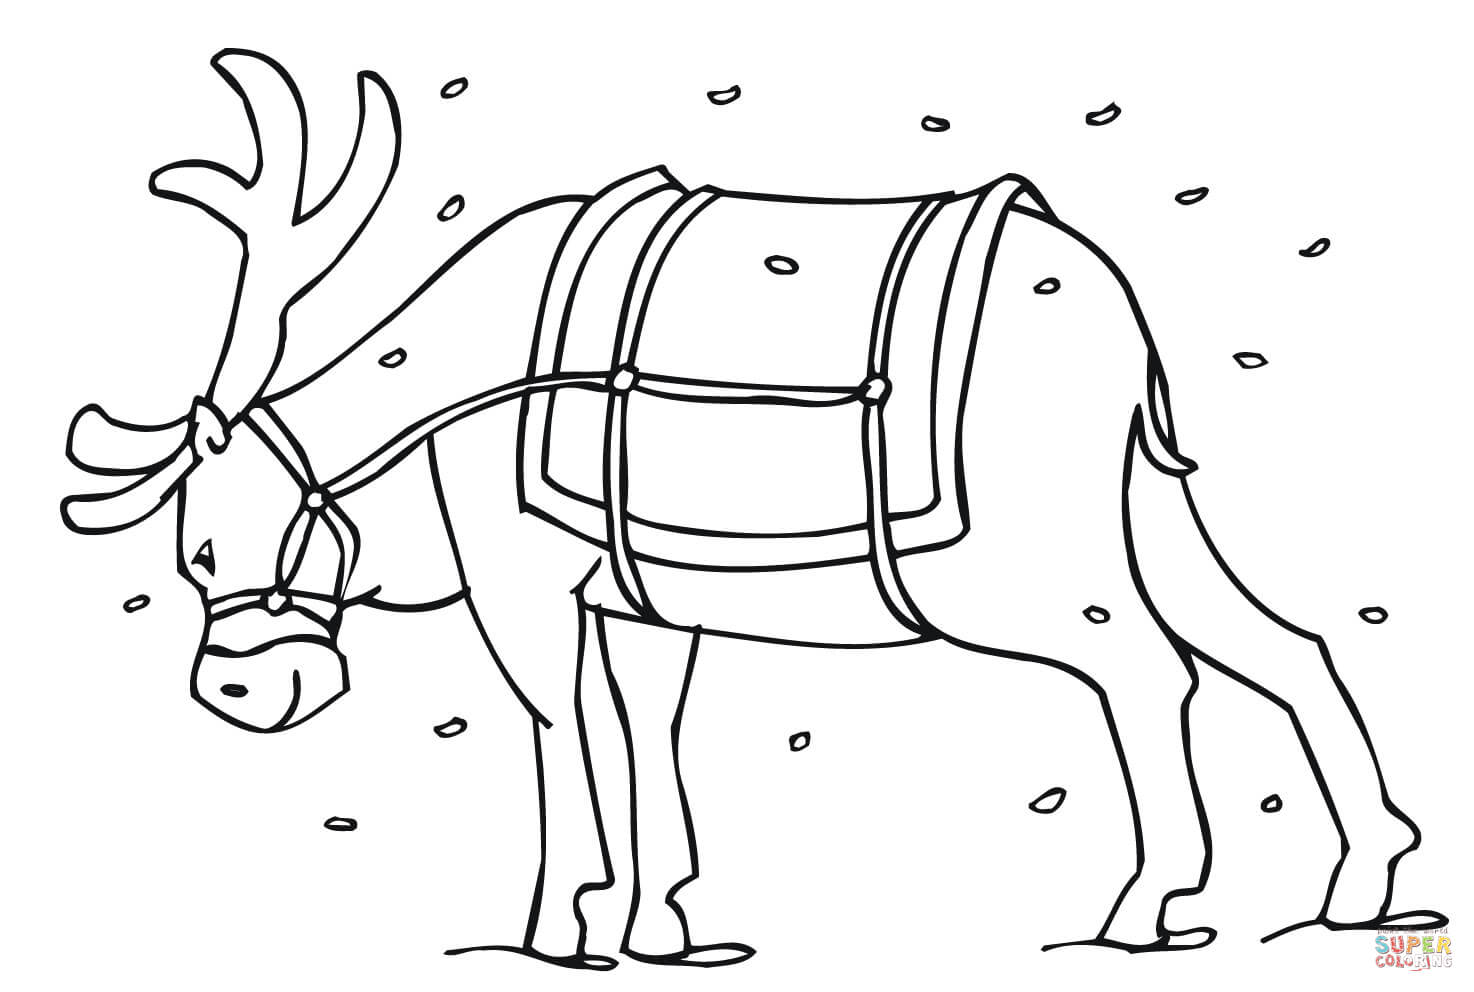 Reindeer Santa Claus Coloring Pages With S Page Free Printable